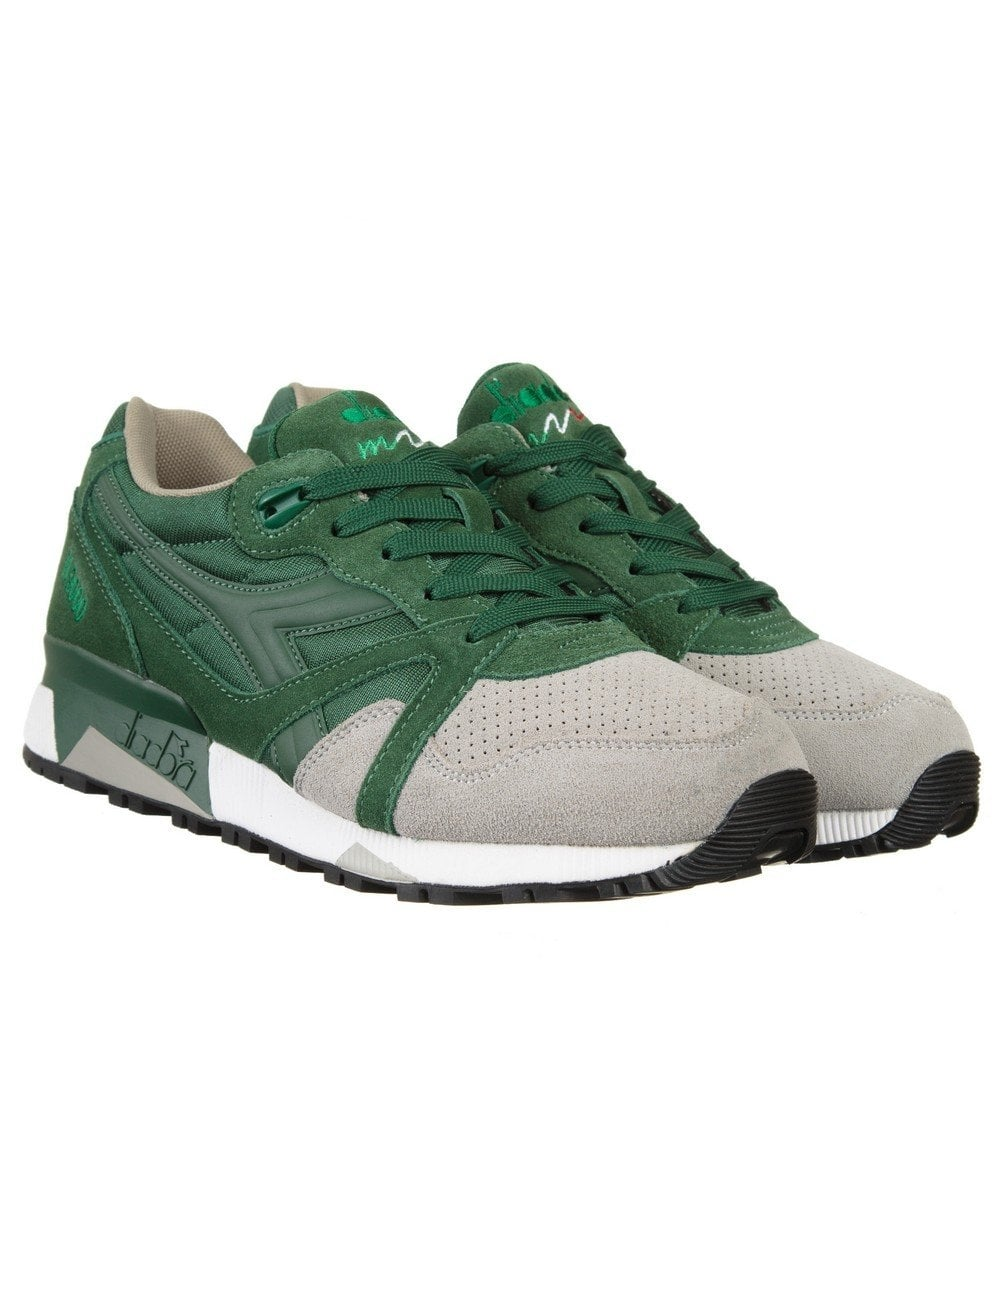 diadora shoes